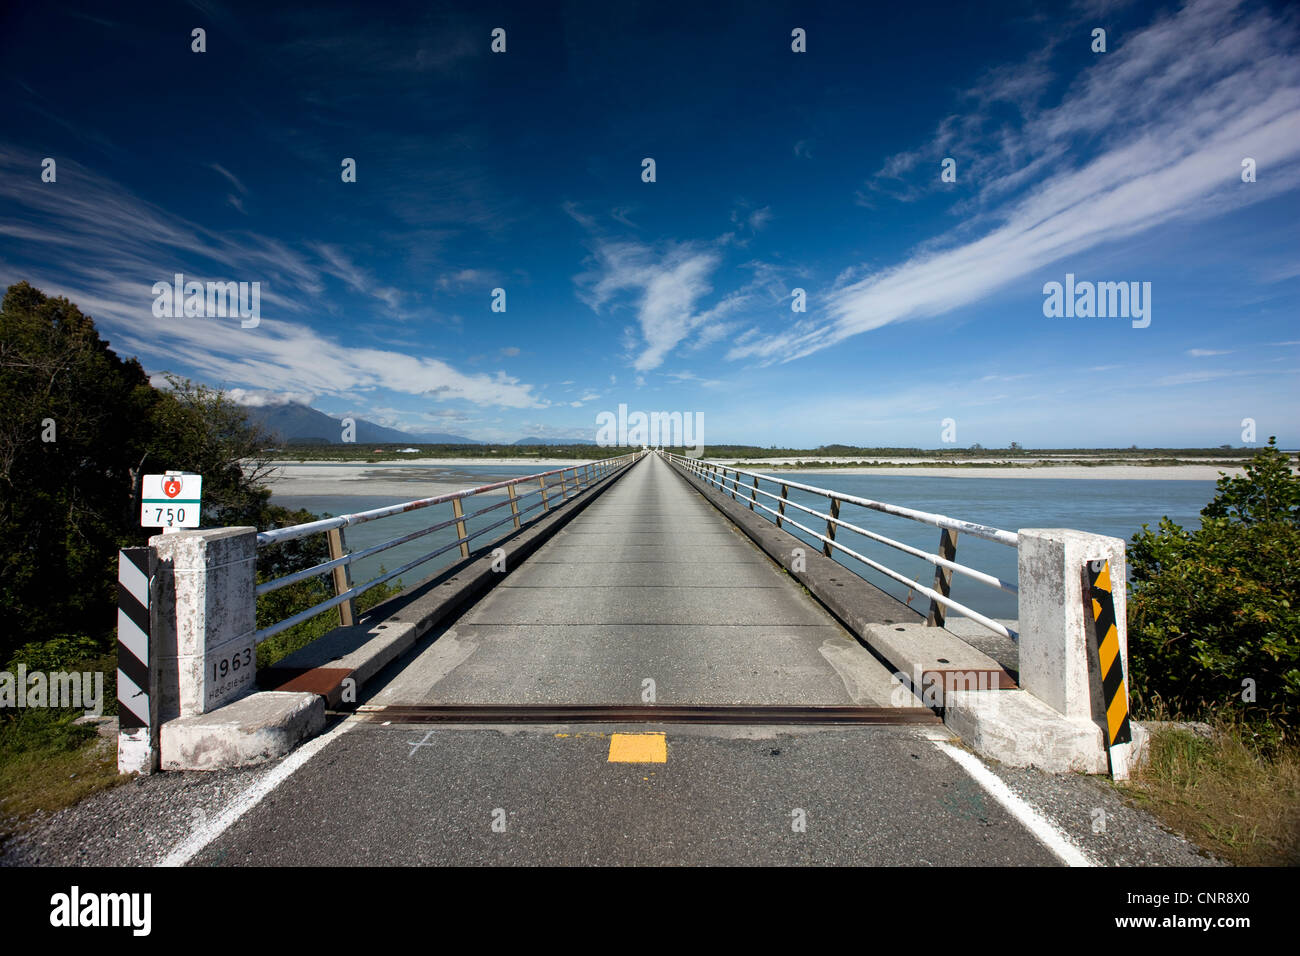 Bridge stretching over rural river Stock Photo